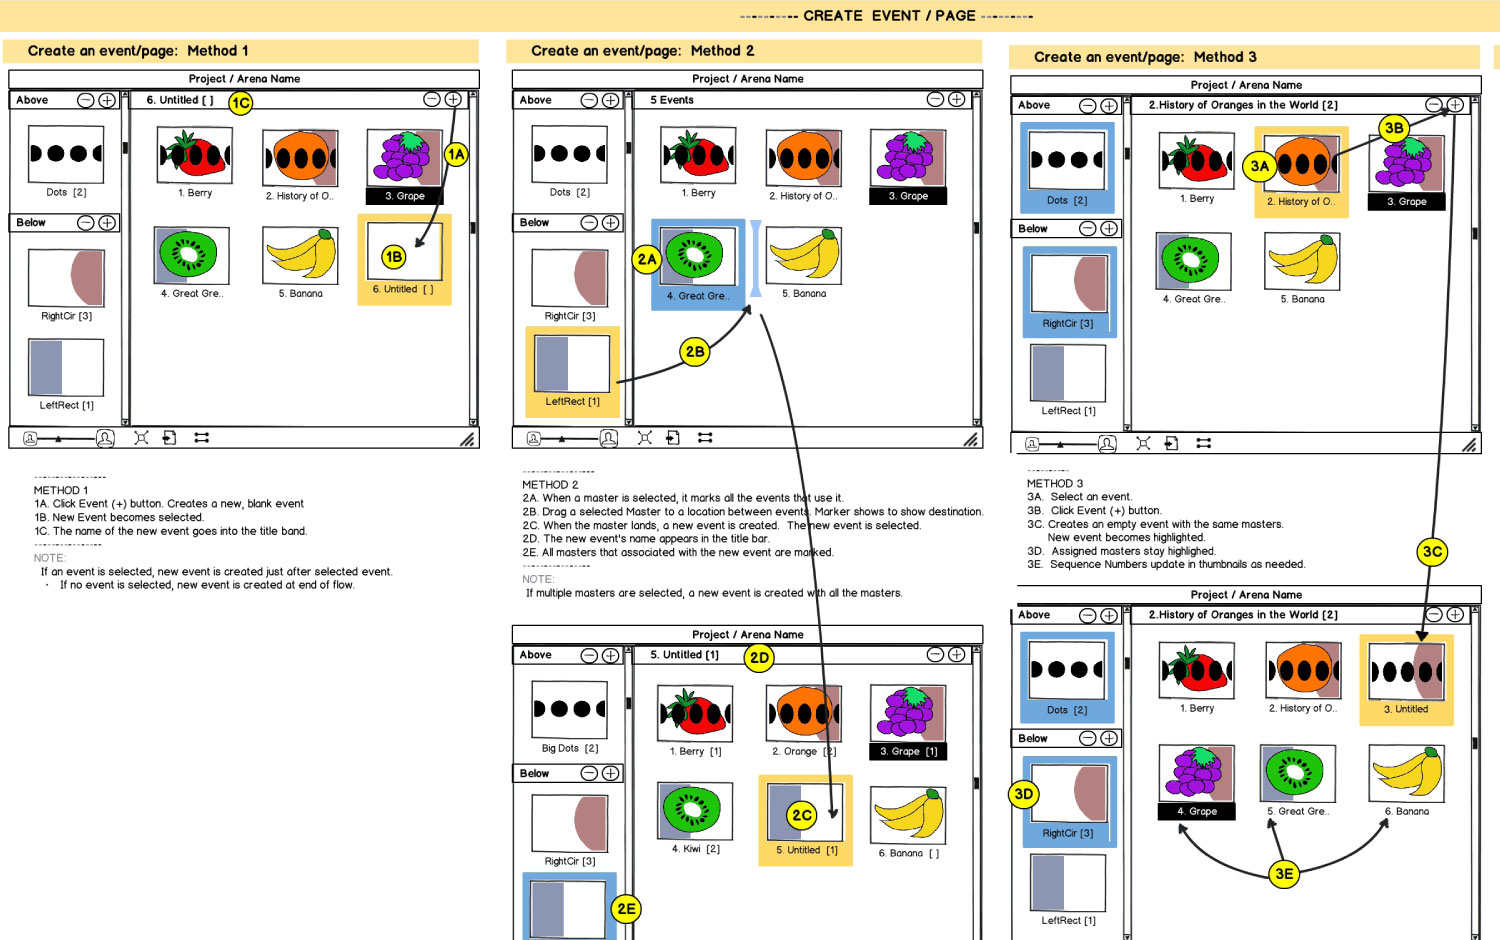 I used multiple tools to design interactions and prototypes. This example shows a concept created with Balsamiq Mockups.